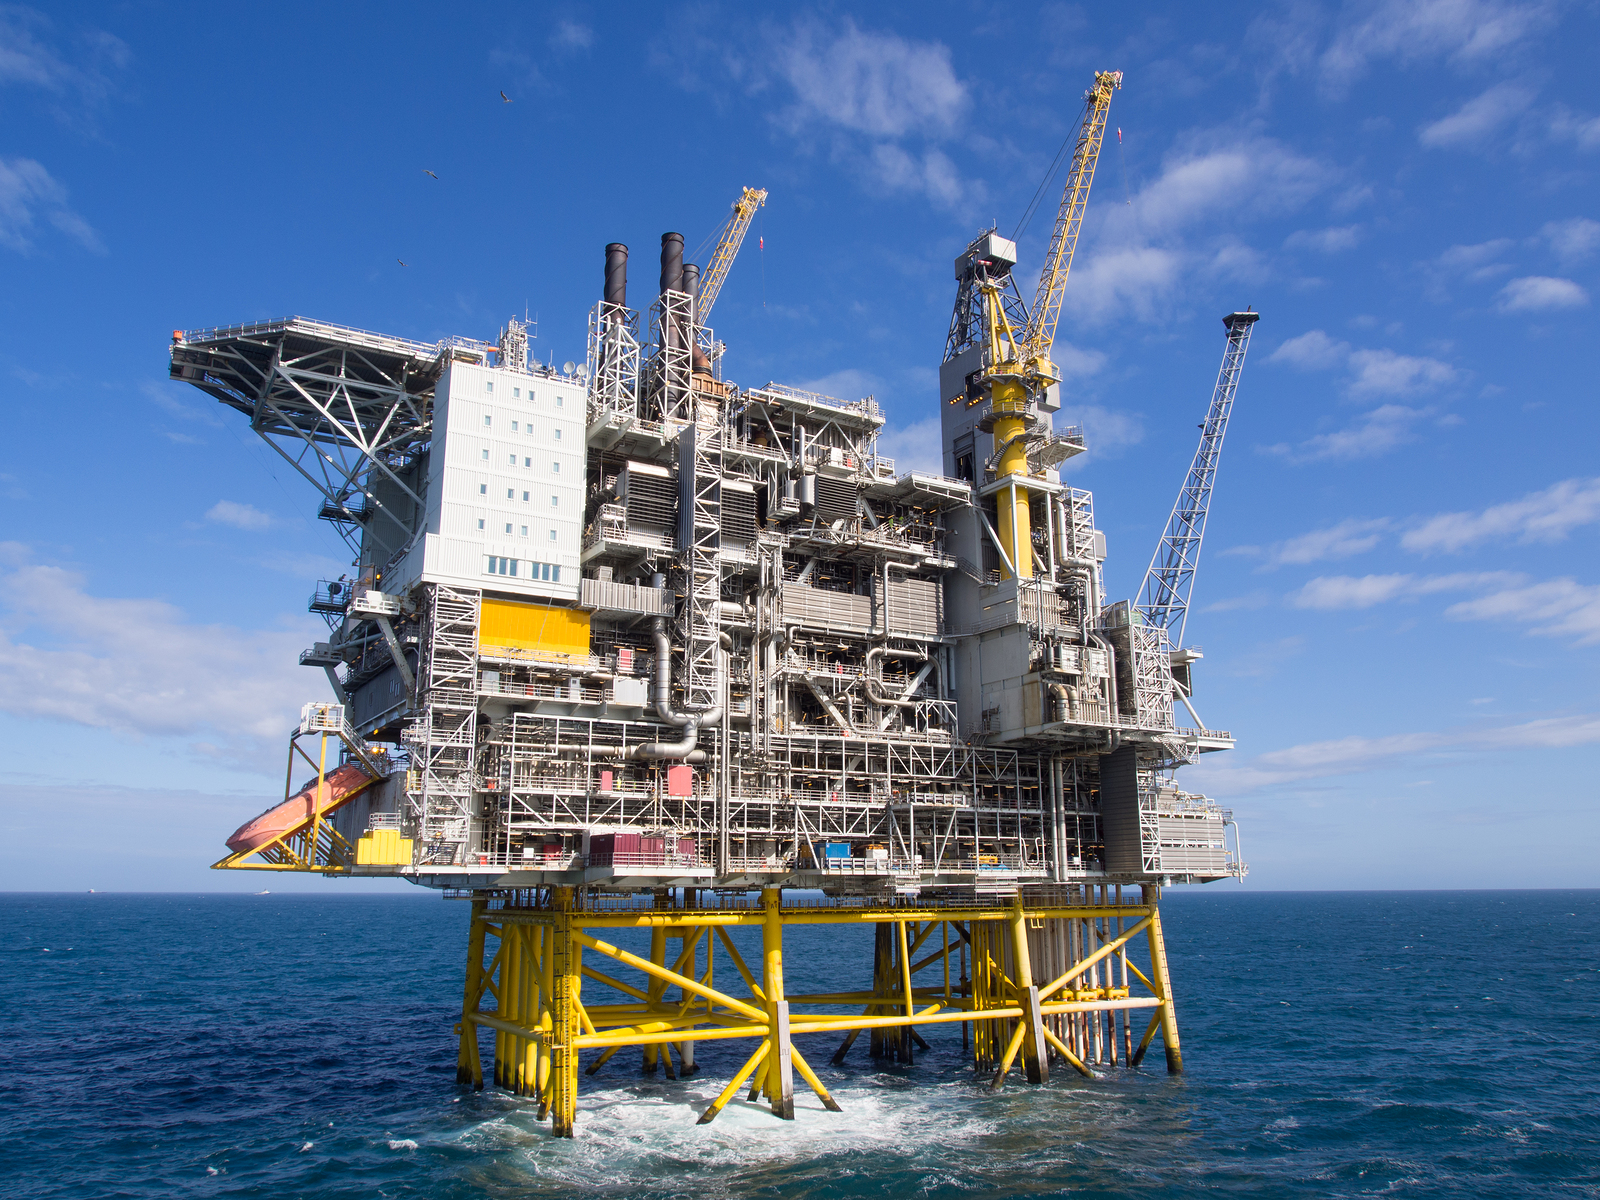 If You Have Been In An Oil Rig Accident Contact A Personal Injury Attorney Today